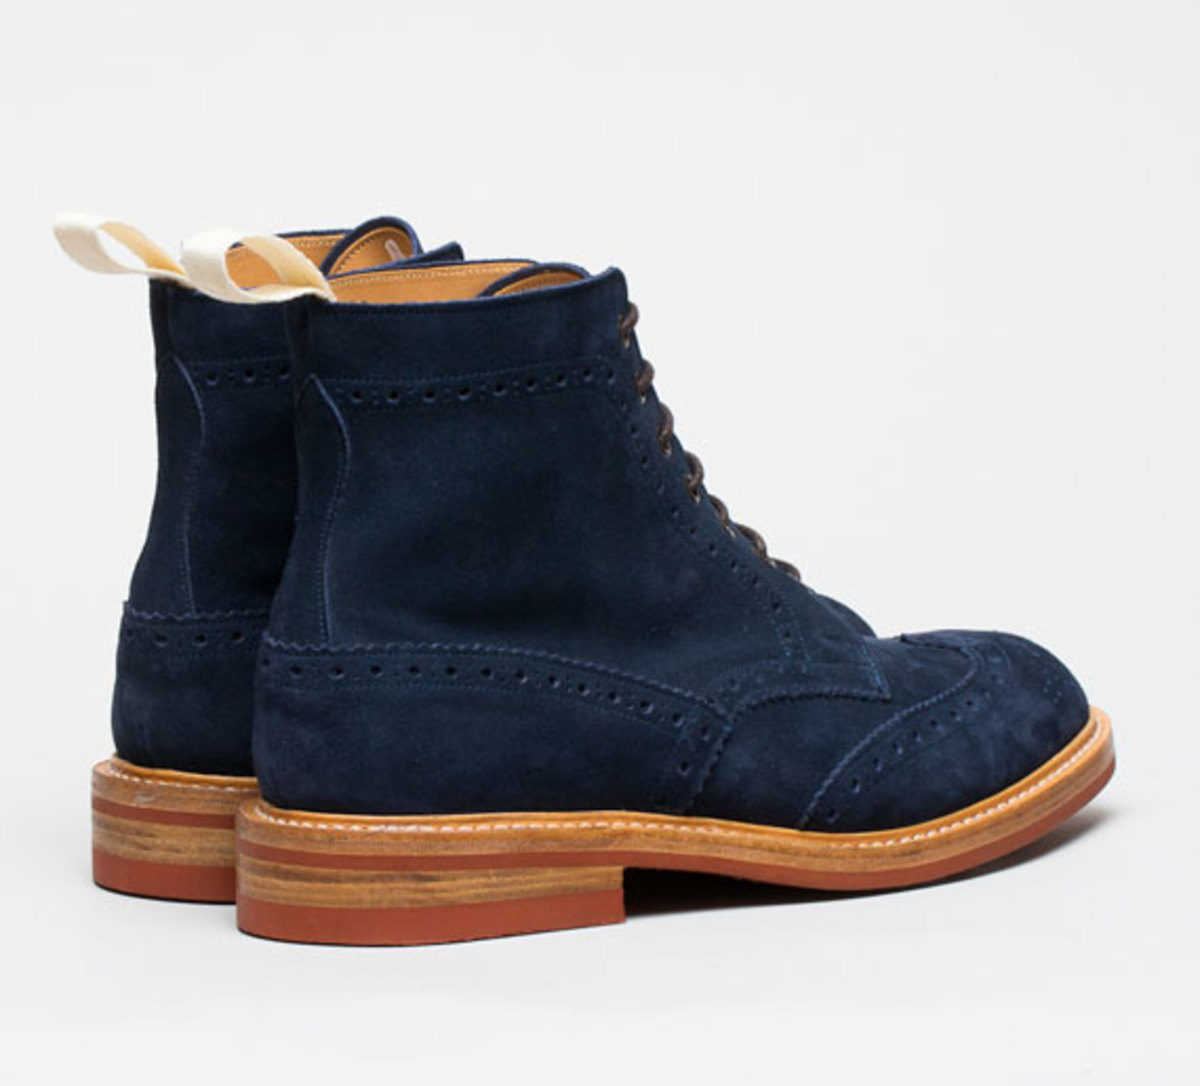 norse-projects-trickers-repello-brogue-boots-11